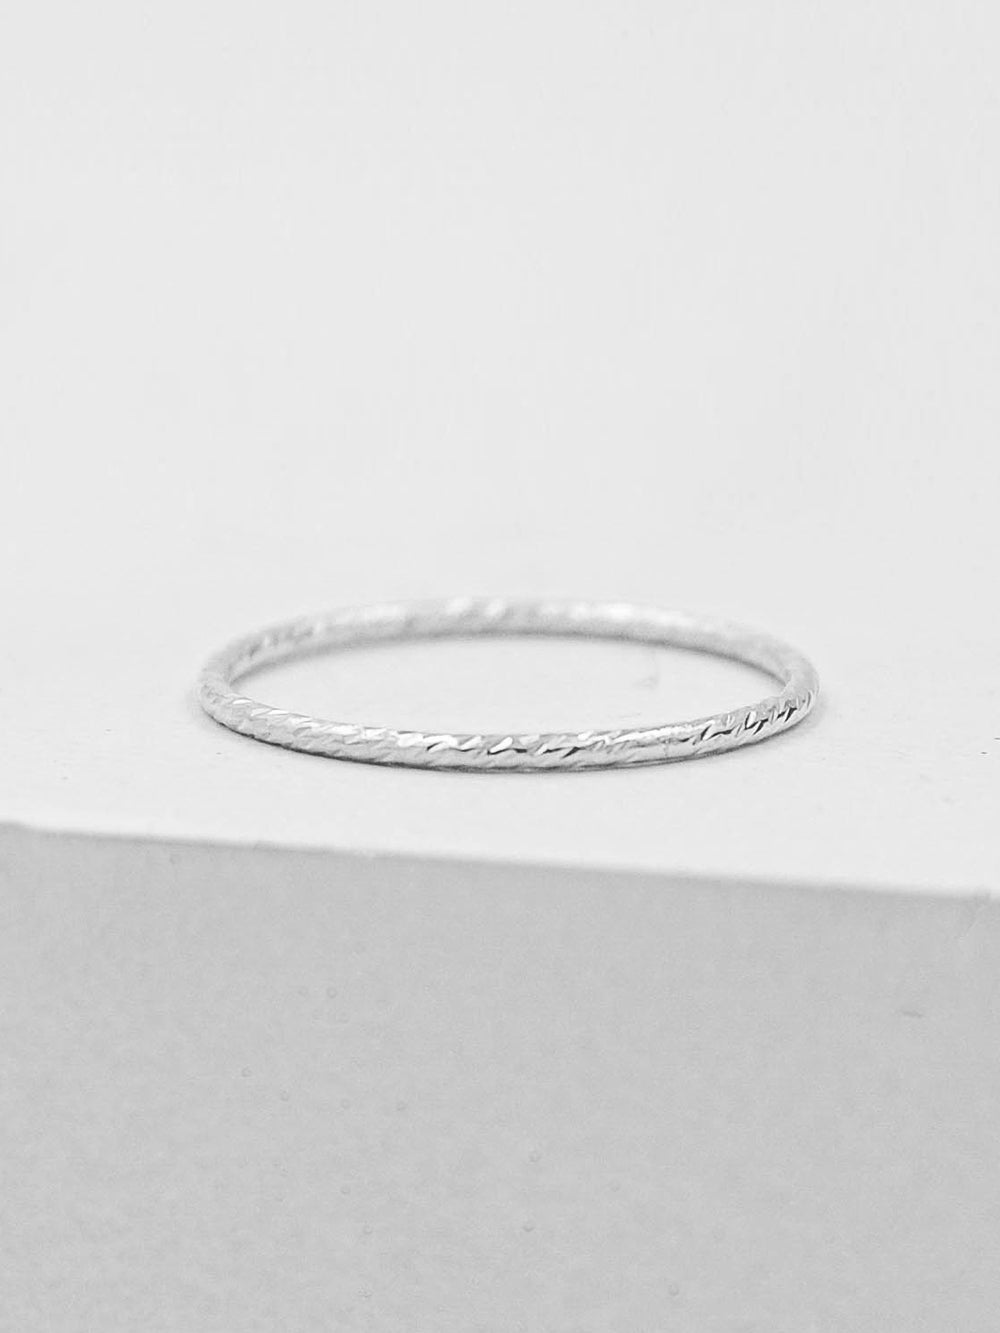 Sterling Silver Thin Band Ring by The Faint Hearted Jewelry